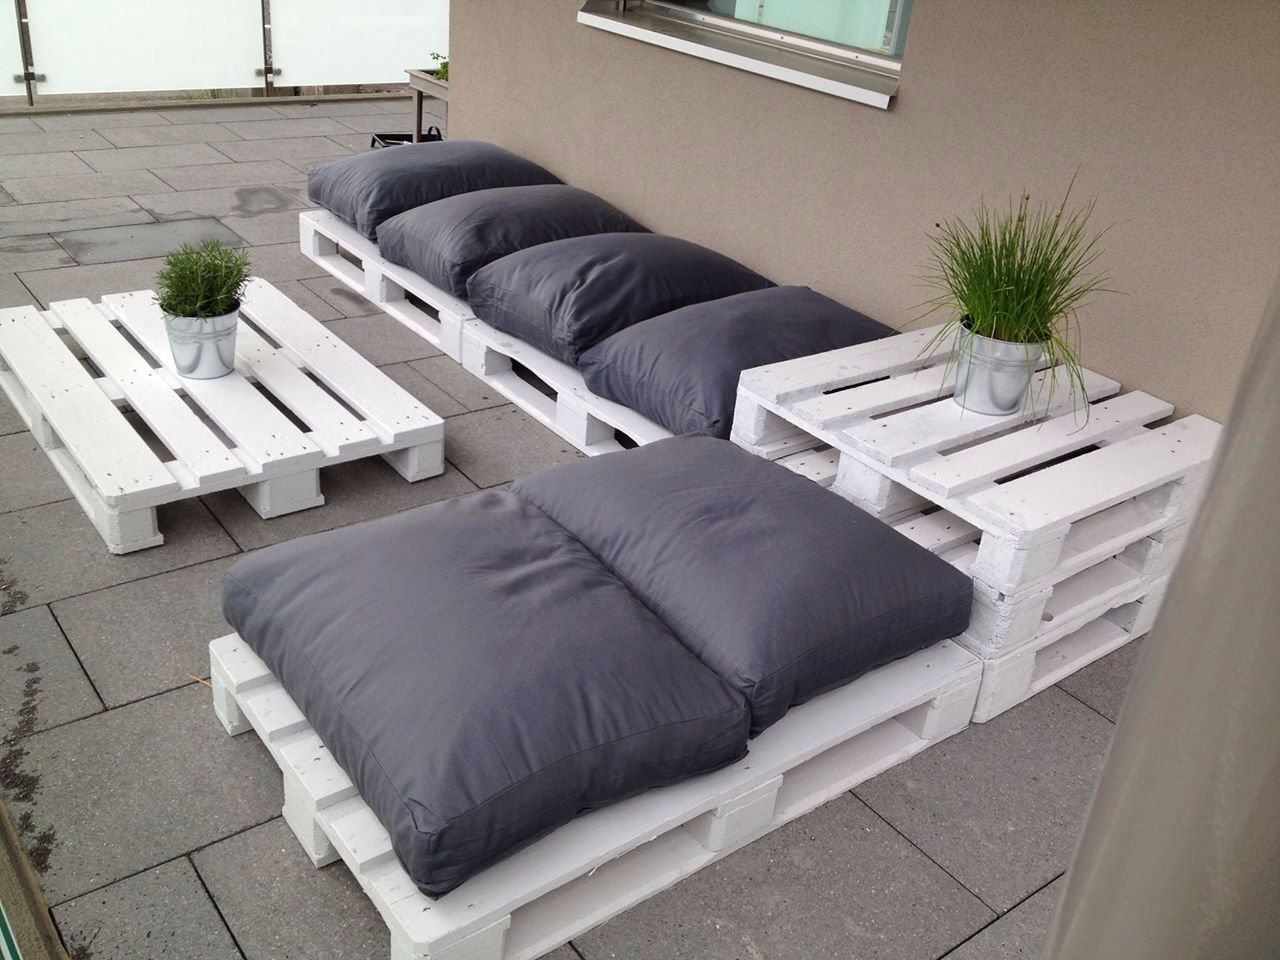 Outdoor pallet seats... could make these for indoor extra seats - Outdoor Pallet Seats... Could Make These For Indoor Extra Seats